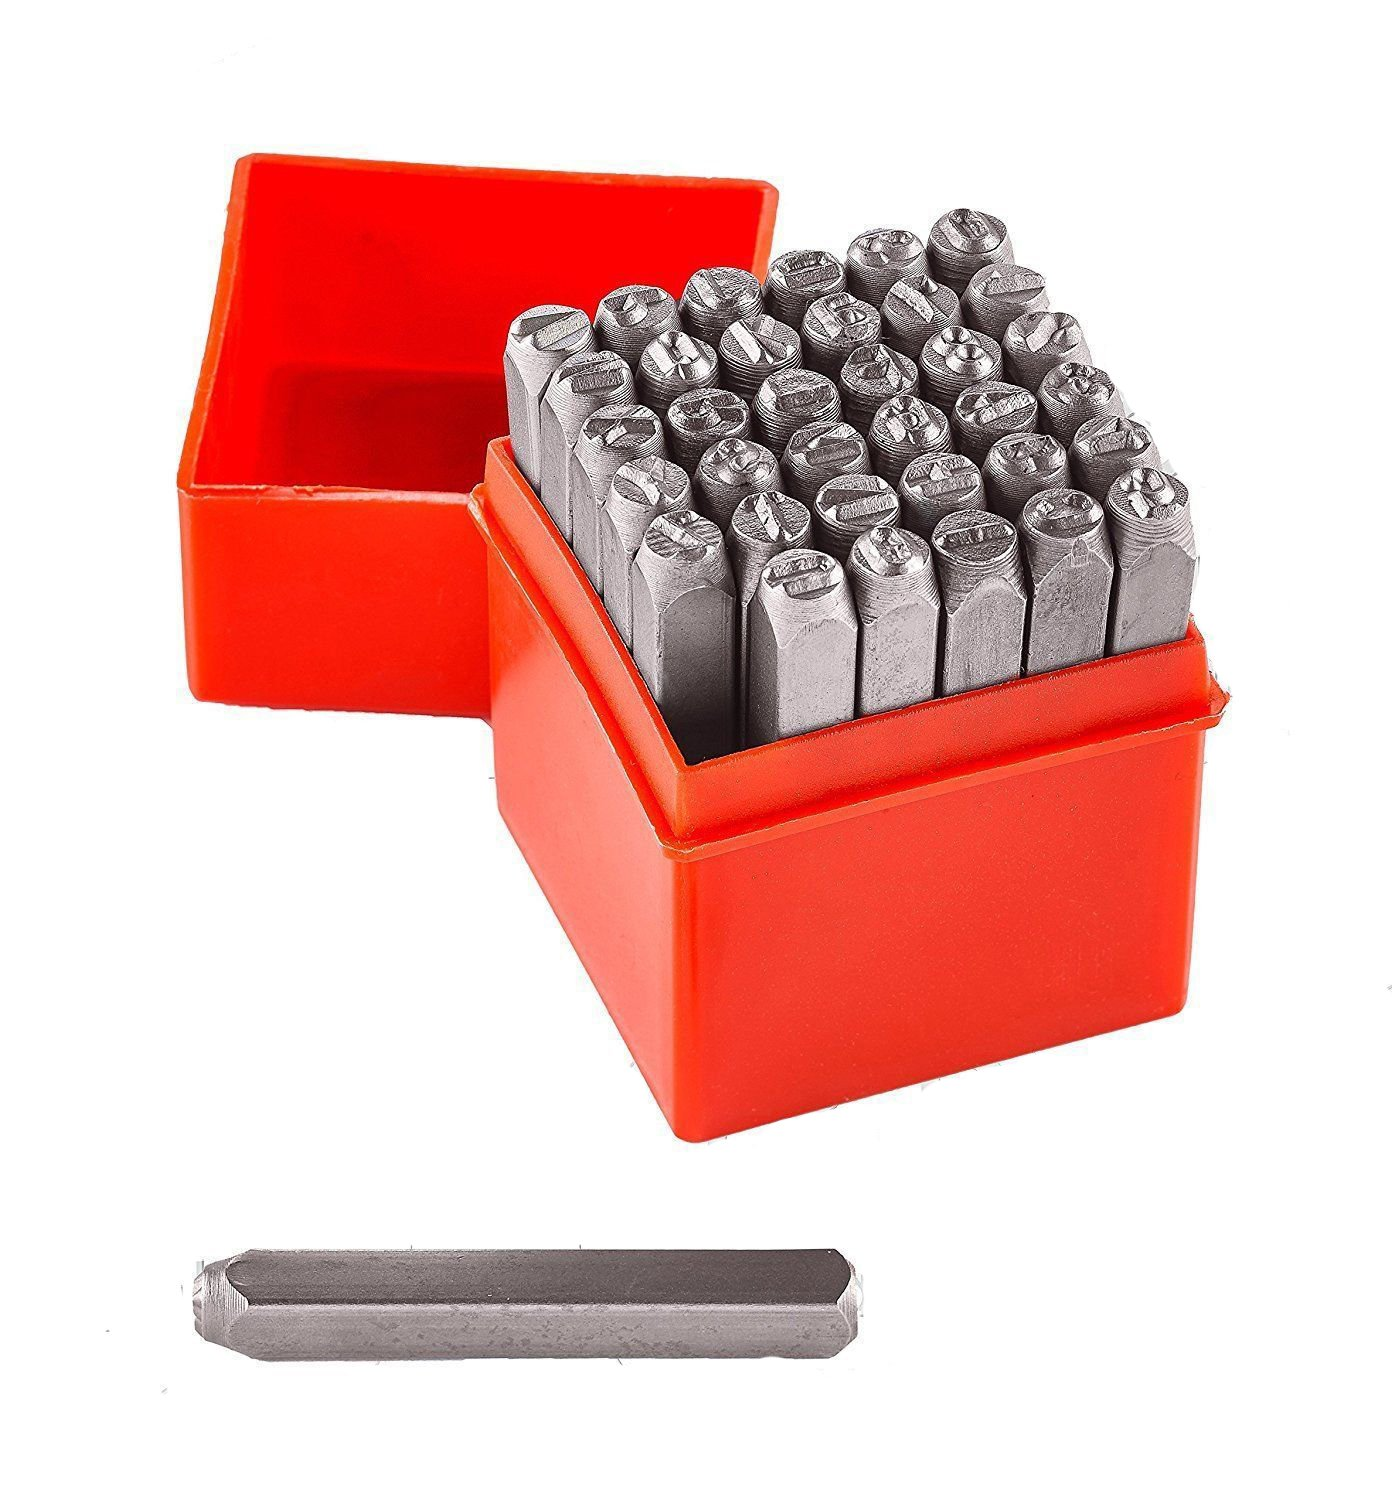 ESKALEX>>1/4'' 36pc Letter Number Stamp Punch 6mm Hardened Steel Metal Wood Leather CrV And 1/4'' A-Z, 0-8 (Turn 6 Upside Down for 9) Storage Case Included Please note: case color will vary from